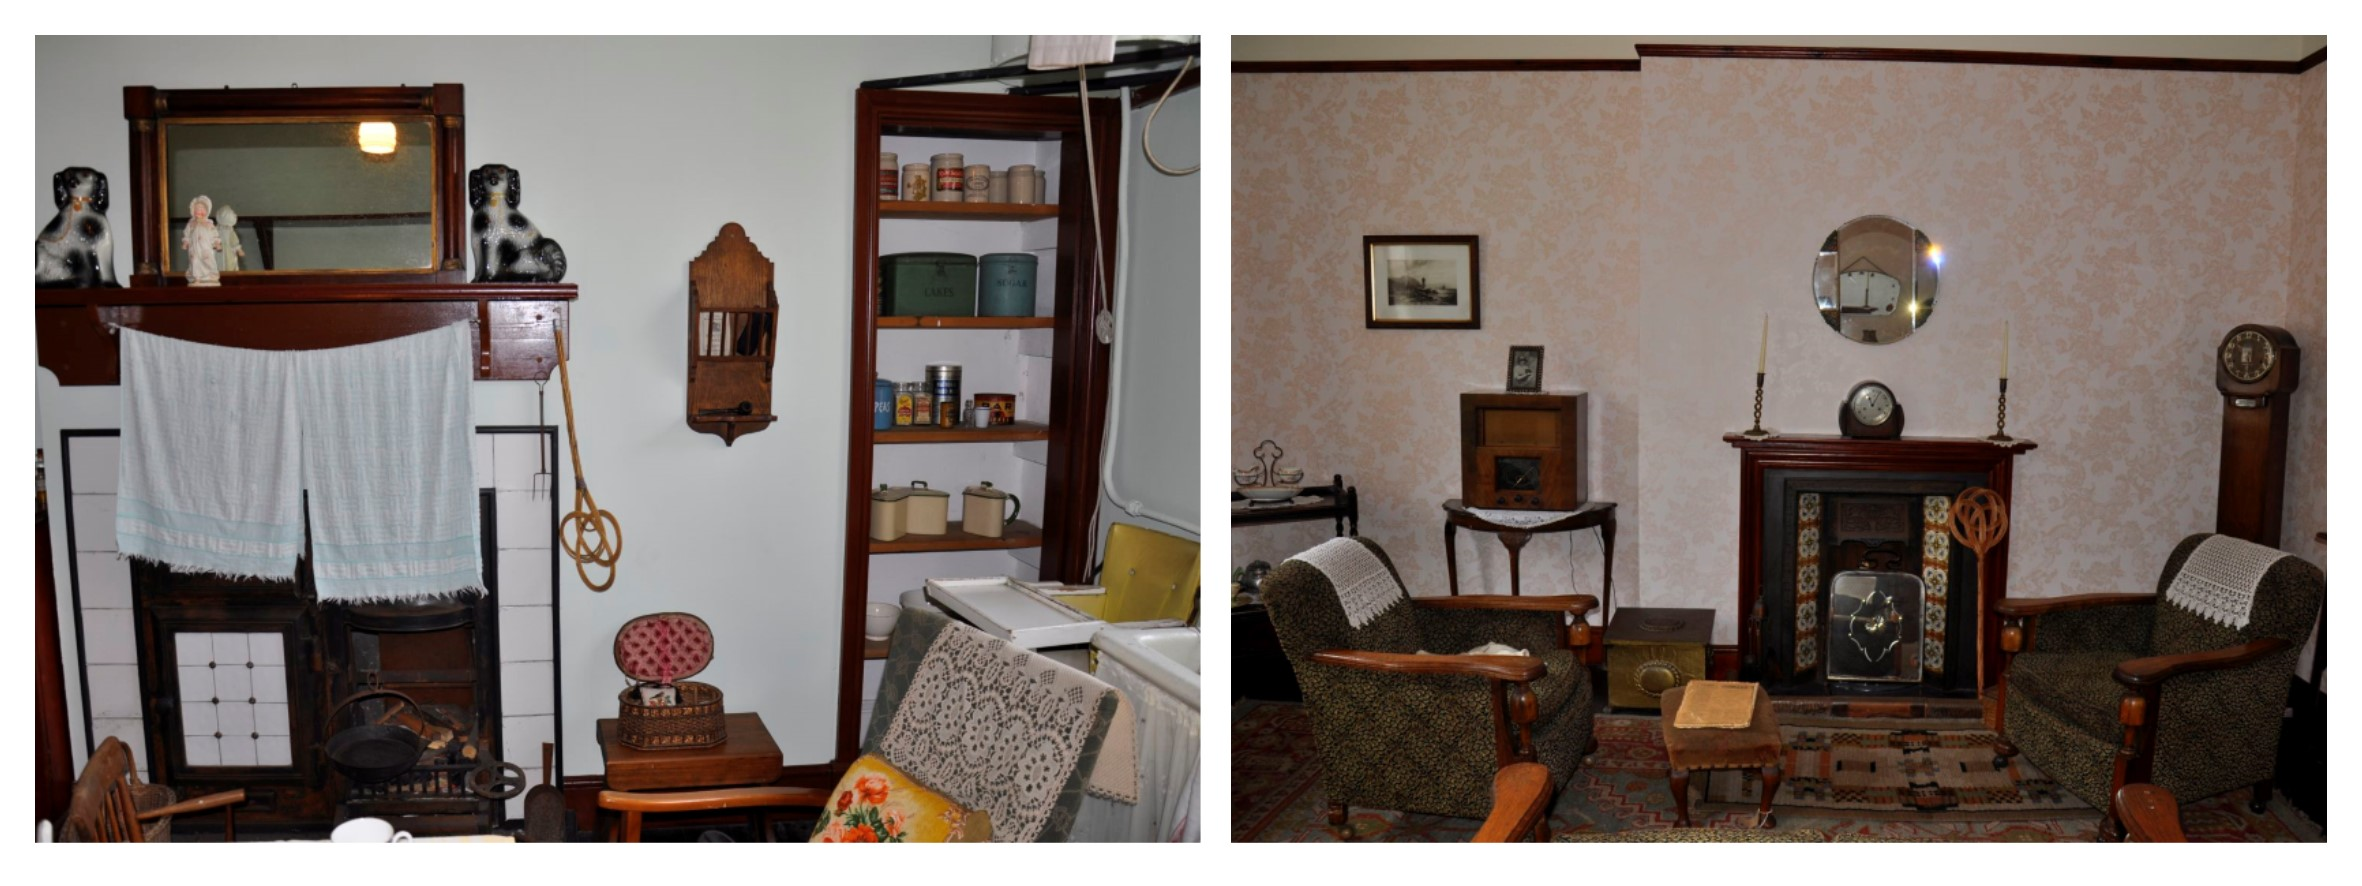 Two photographs showing the interior of the 1940s cottage kitchen and living room at Summerlee